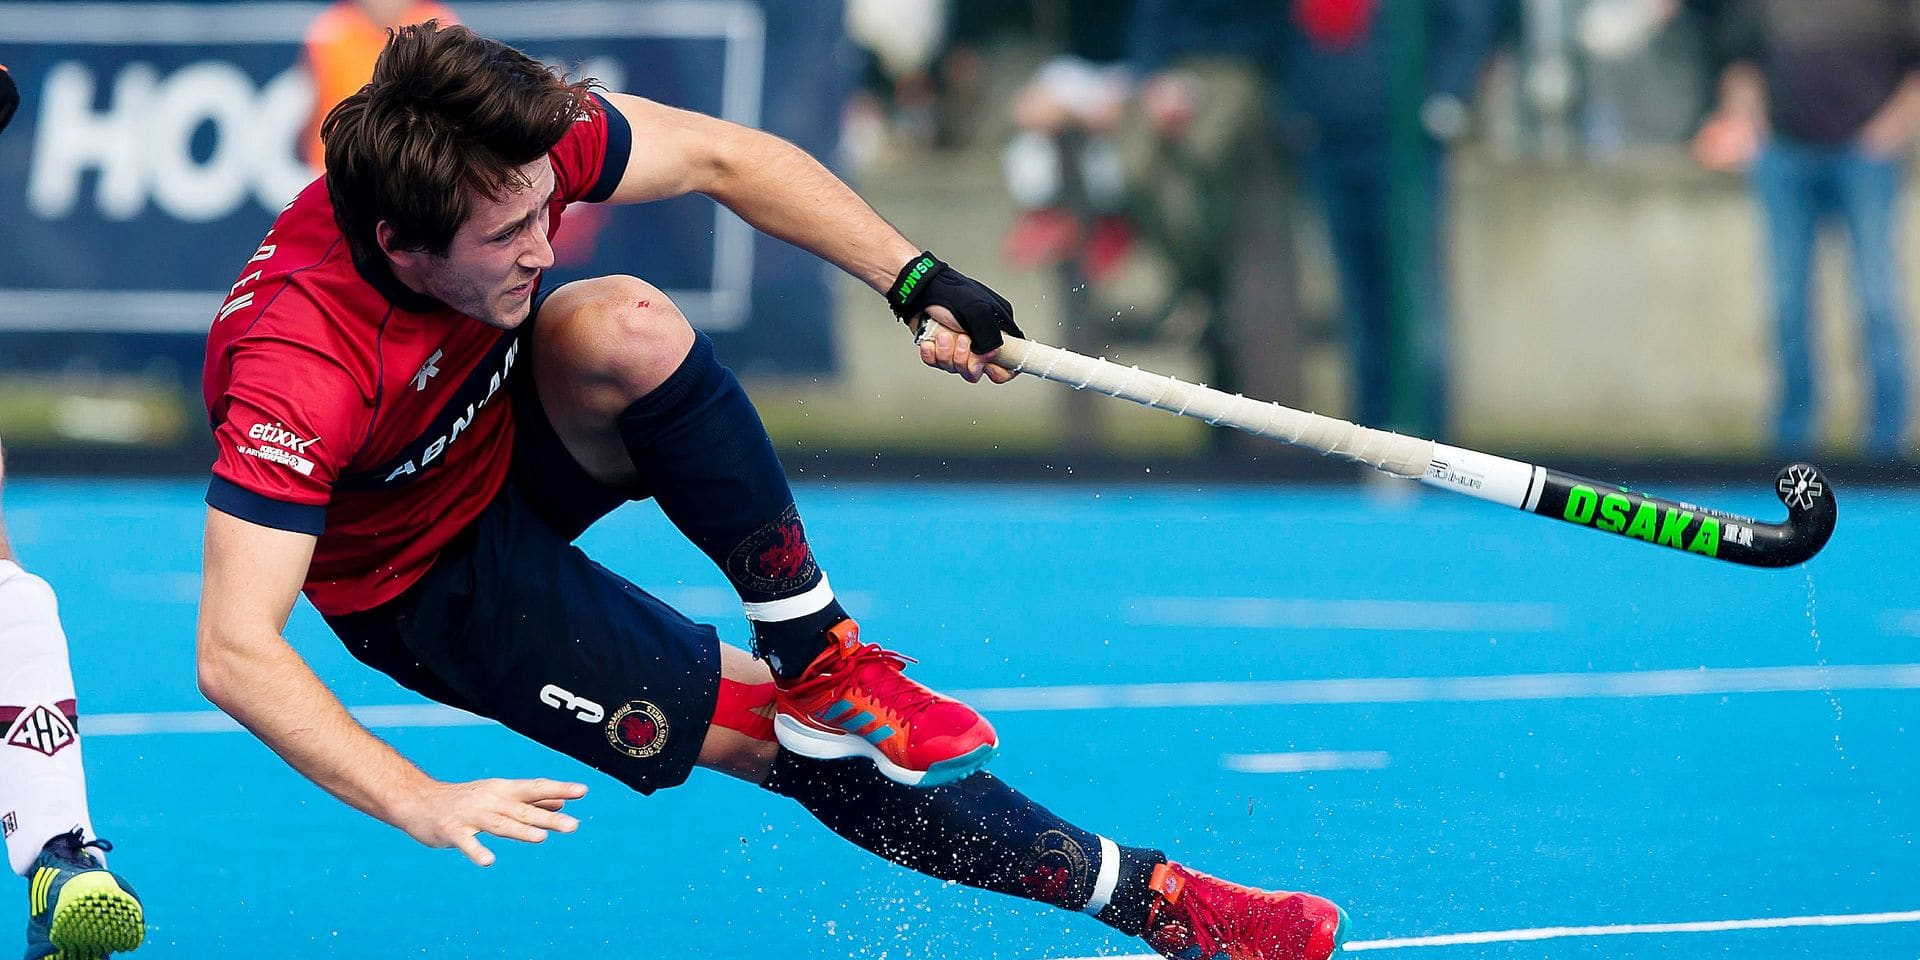 KHC Dragons' Arthur Van Doren pictured in action during a hockey game between Royal Herakles HC and KHC Dragons, in the Audi league hockey competition, Sunday 25 March 2018, in Lier. BELGA PHOTO KRISTOF VAN ACCOM